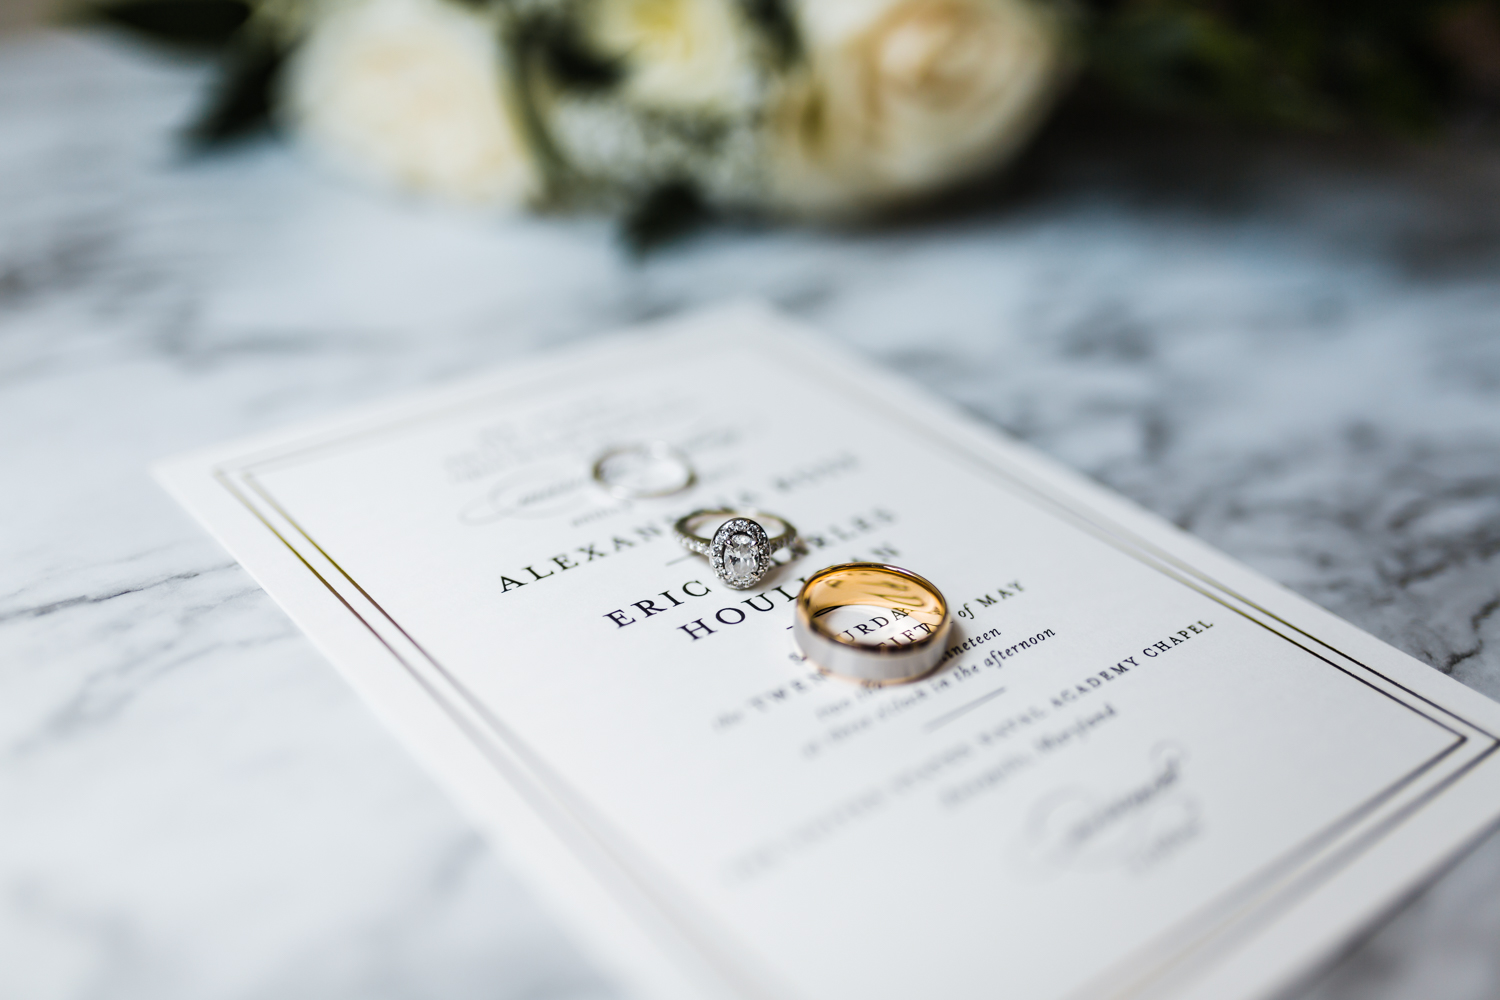 oval engagement ring details - annapolis maryland bridal details - best wedding photographer and videographer in annapolis, md